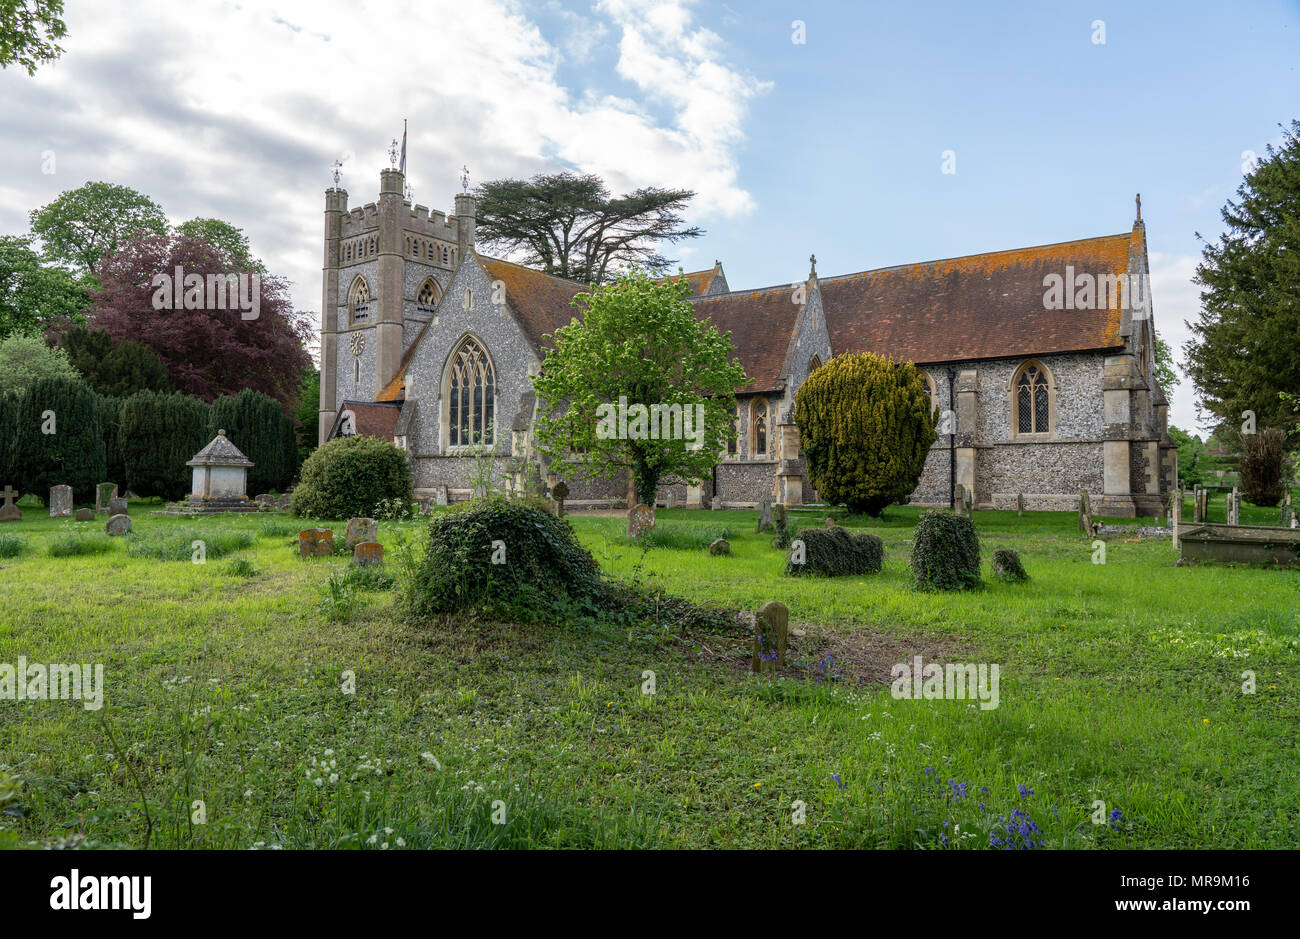 St Mary the Virgin church in village of Hambleden - Stock Image